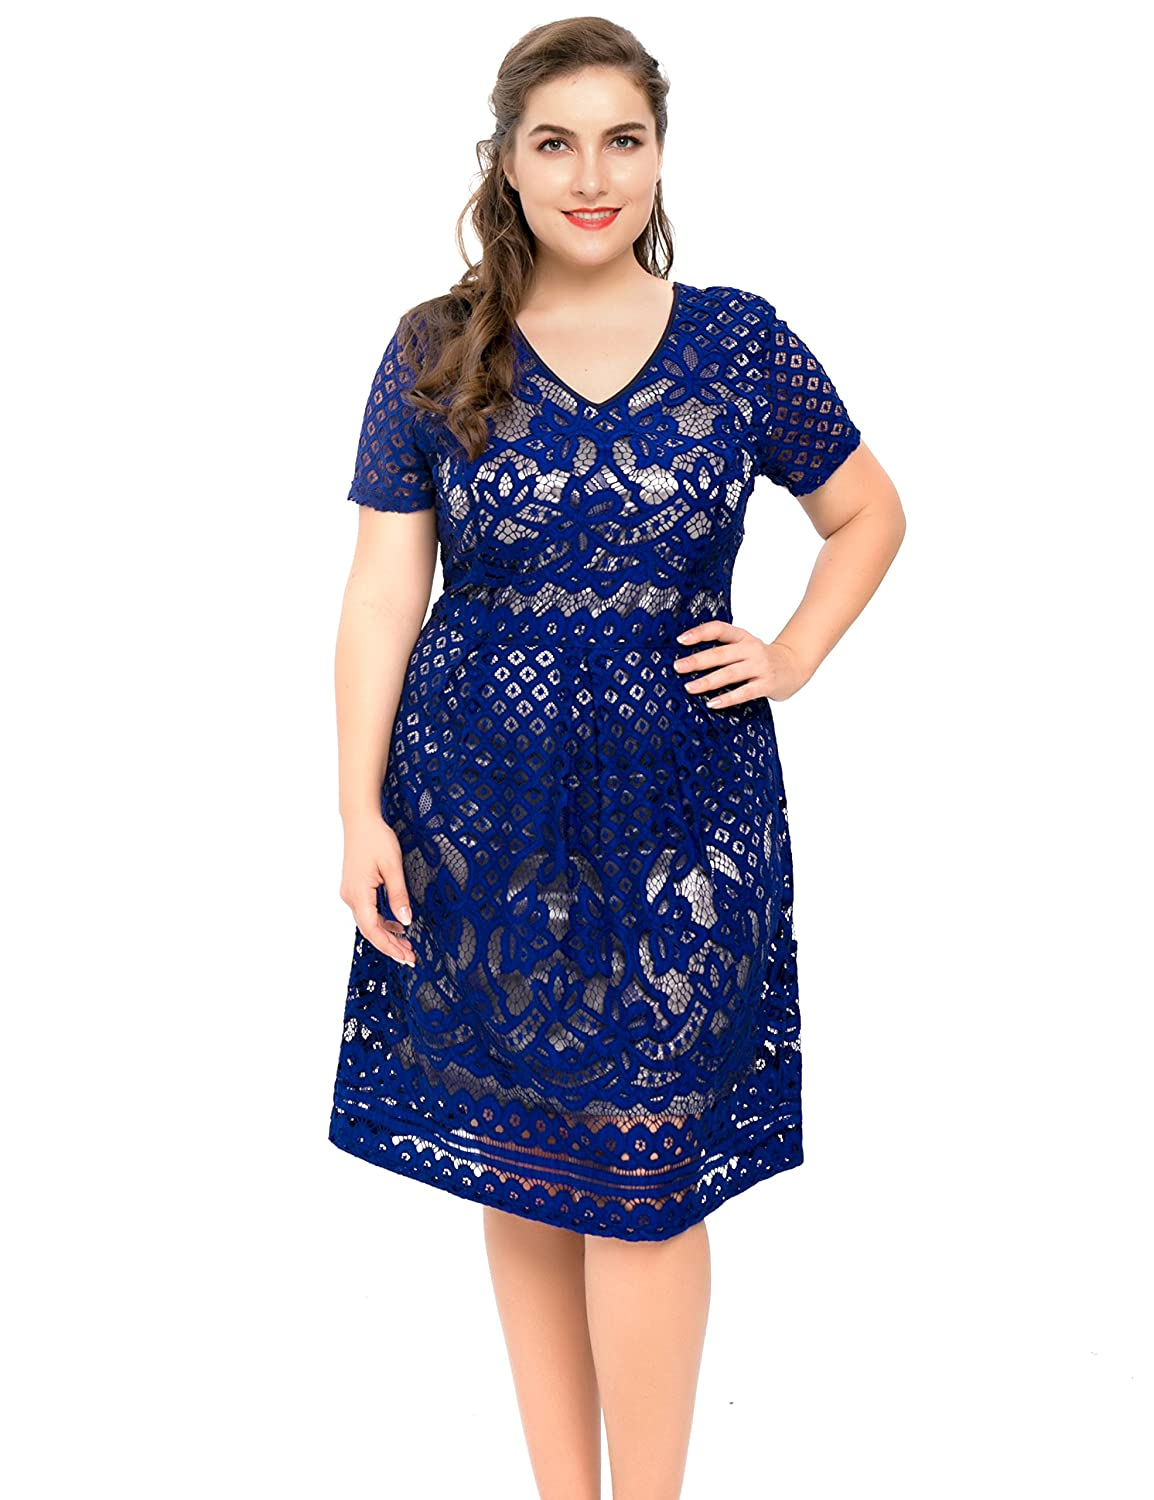 67351995a3 Chicwe Women s Plus Size Lined Floral Lace Skater Dress - Knee Length  Casual Party Cocktail Dress at Amazon Women s Clothing store